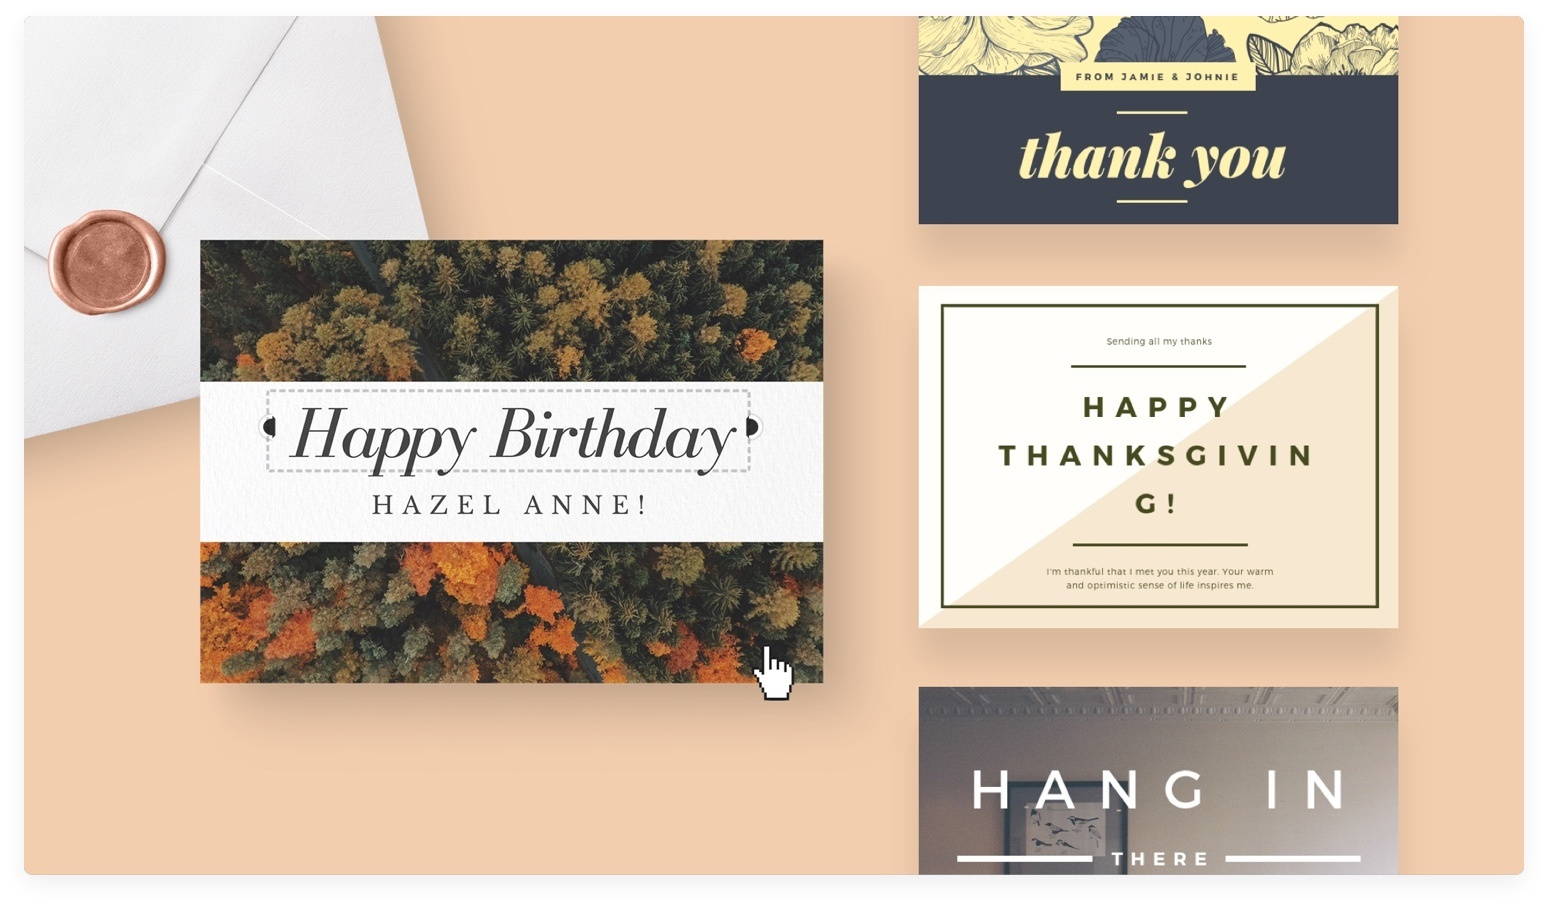 Free Online Card Maker: Create Custom Designs Online | Canva - Make Your Own Printable Birthday Cards Online Free